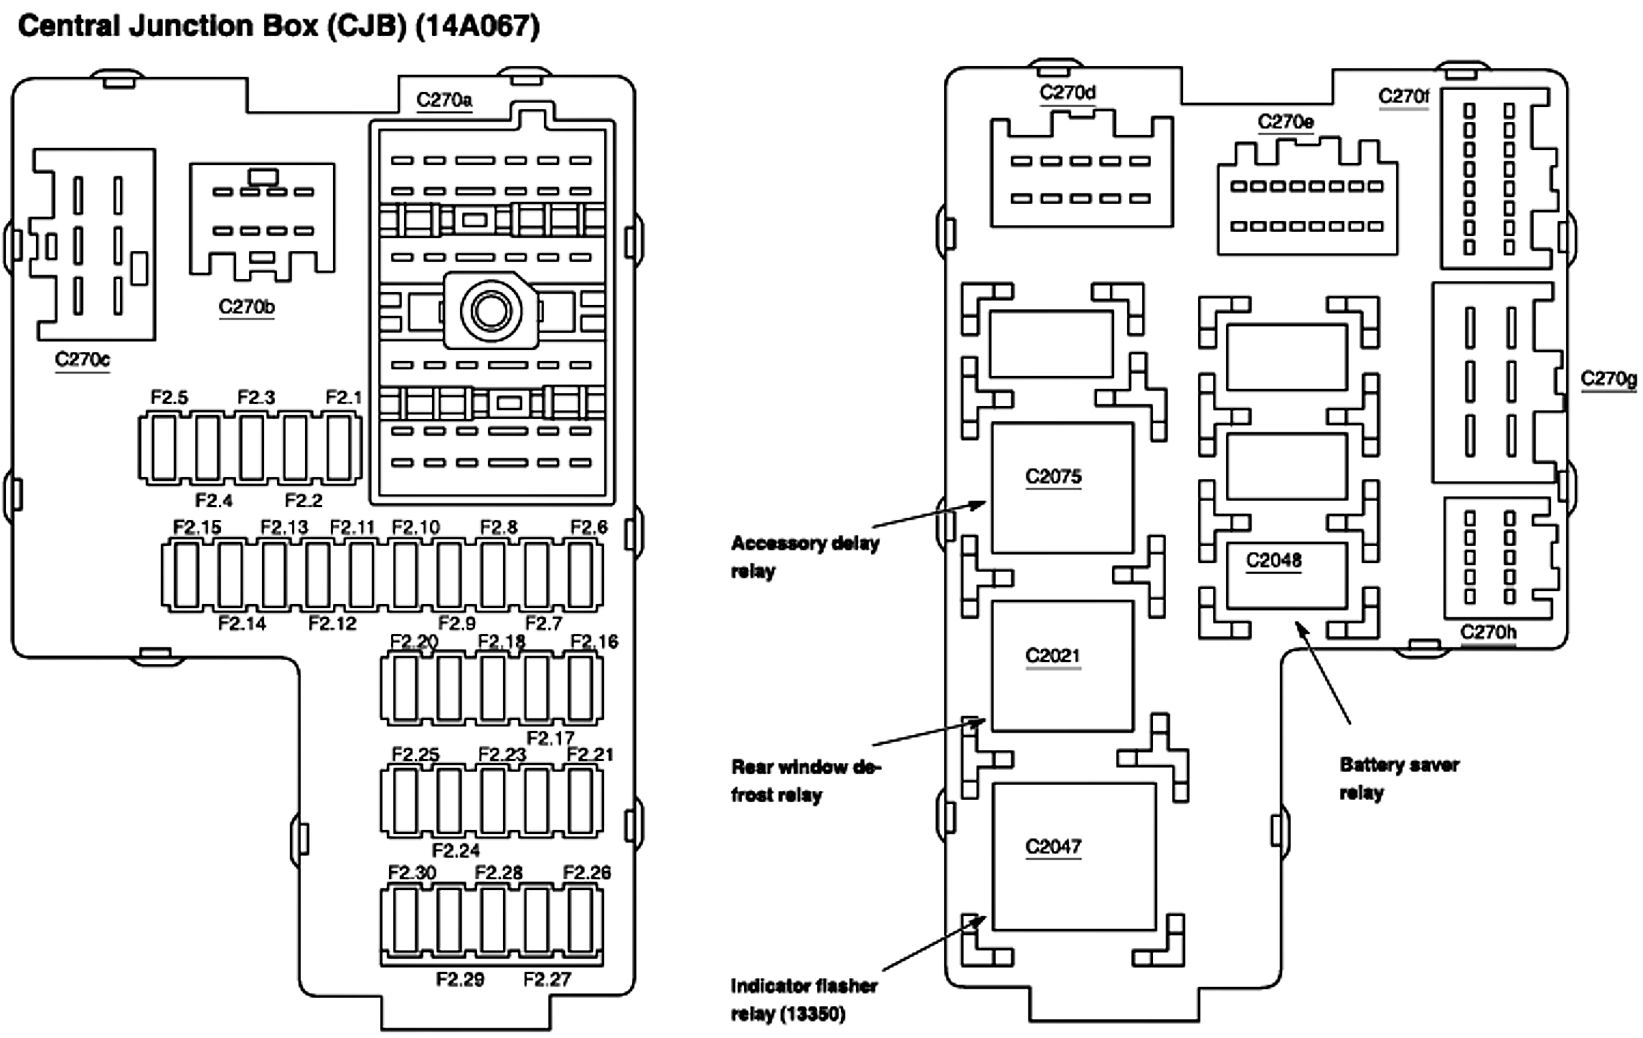 fuse box diagram for 300se 1991 merc fuse cleanjpg